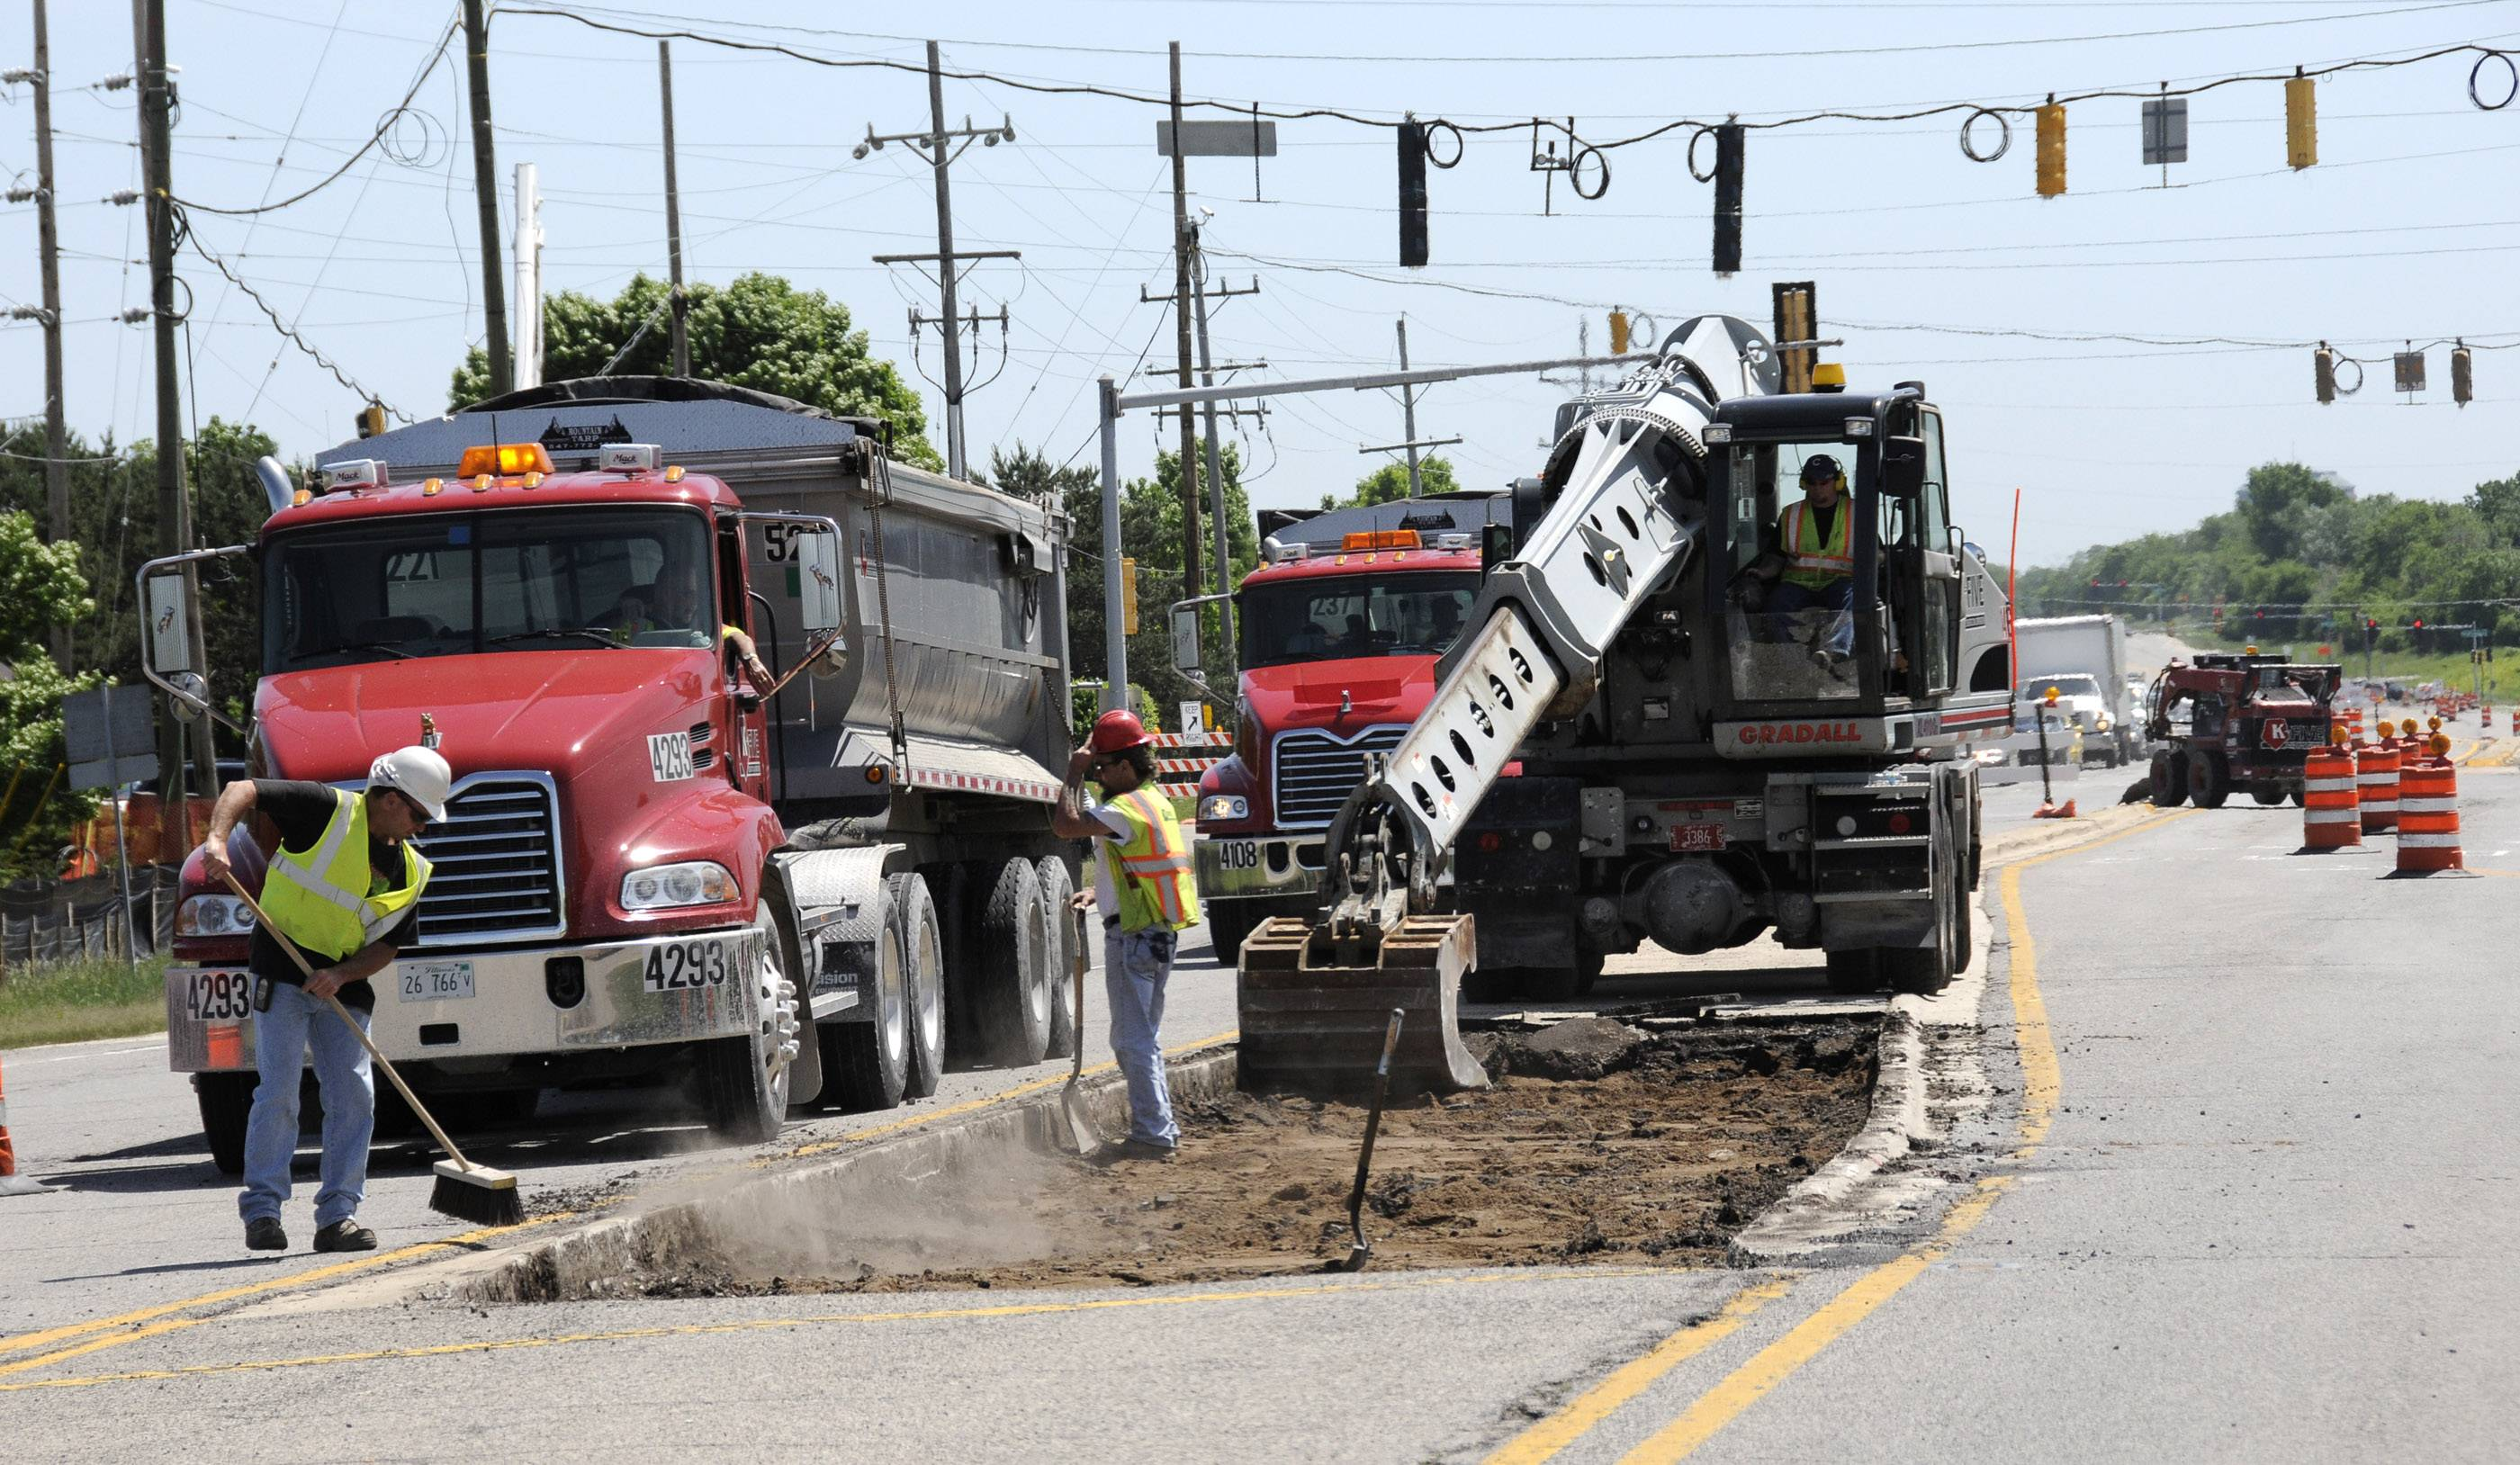 DuPage officials say they might have to slow or postpone some capital projects after learning that the county will get less motor fuel tax money.